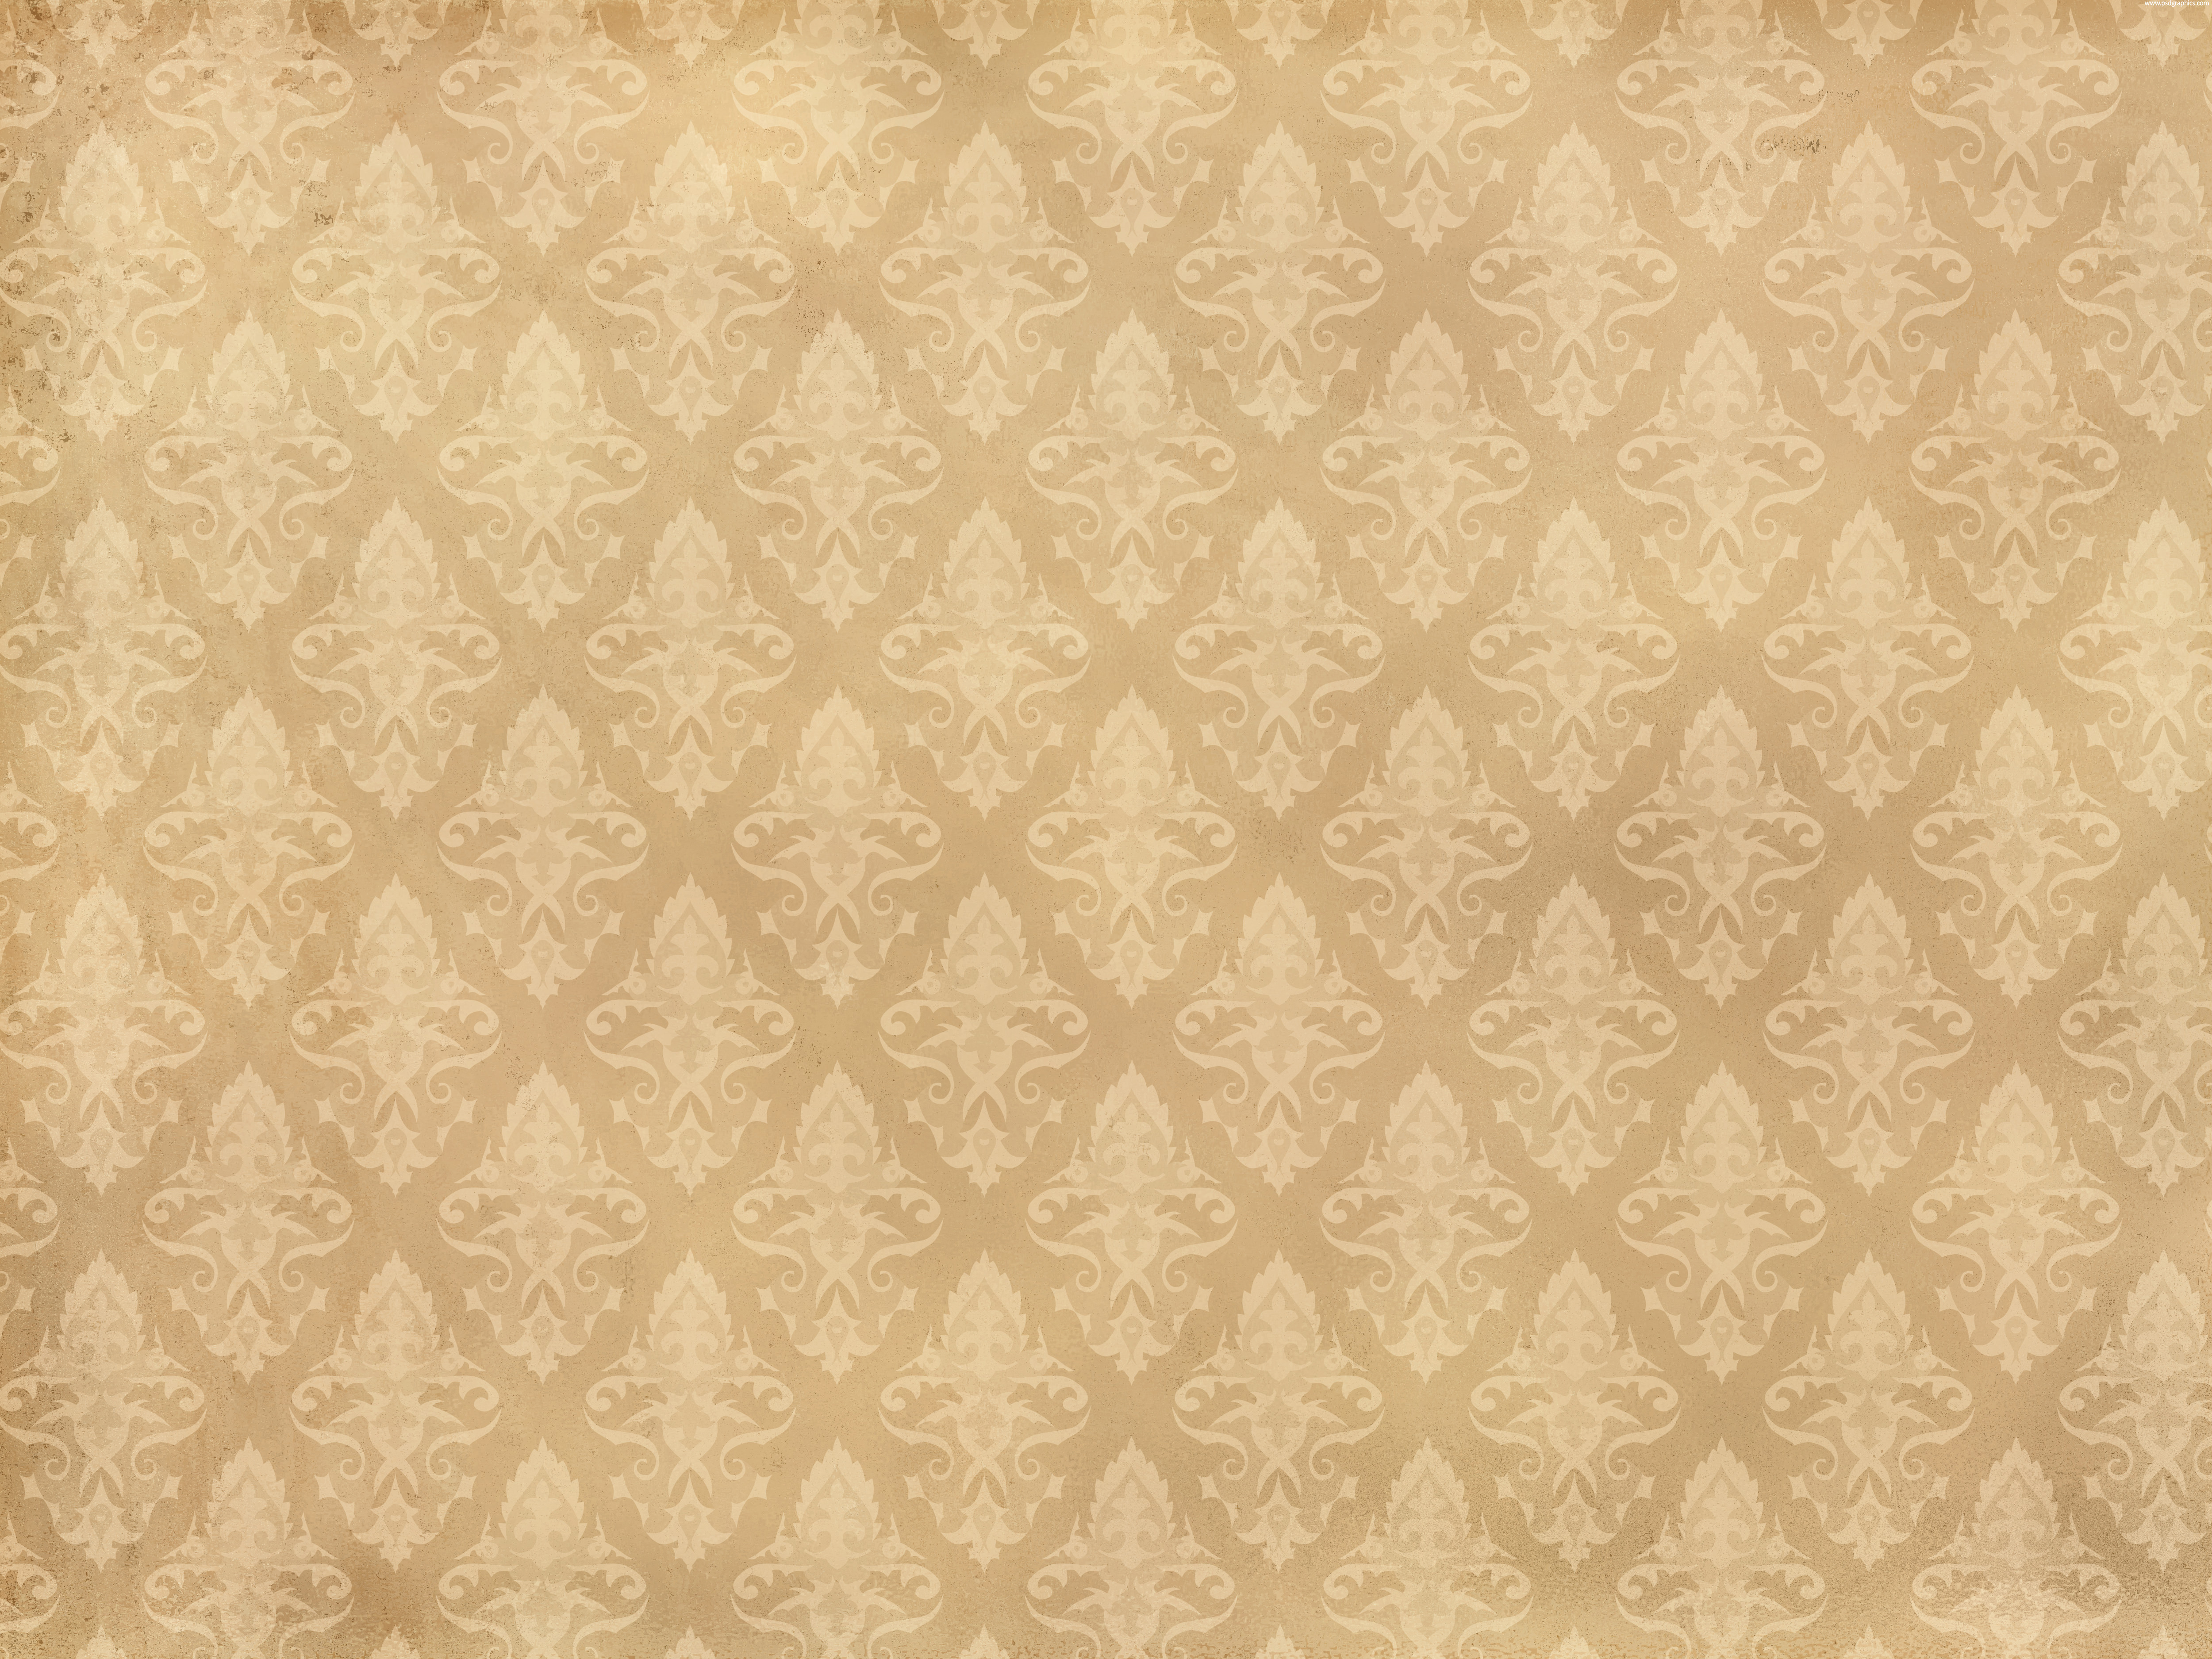 75 brown backgrounds wallpapers images pictures